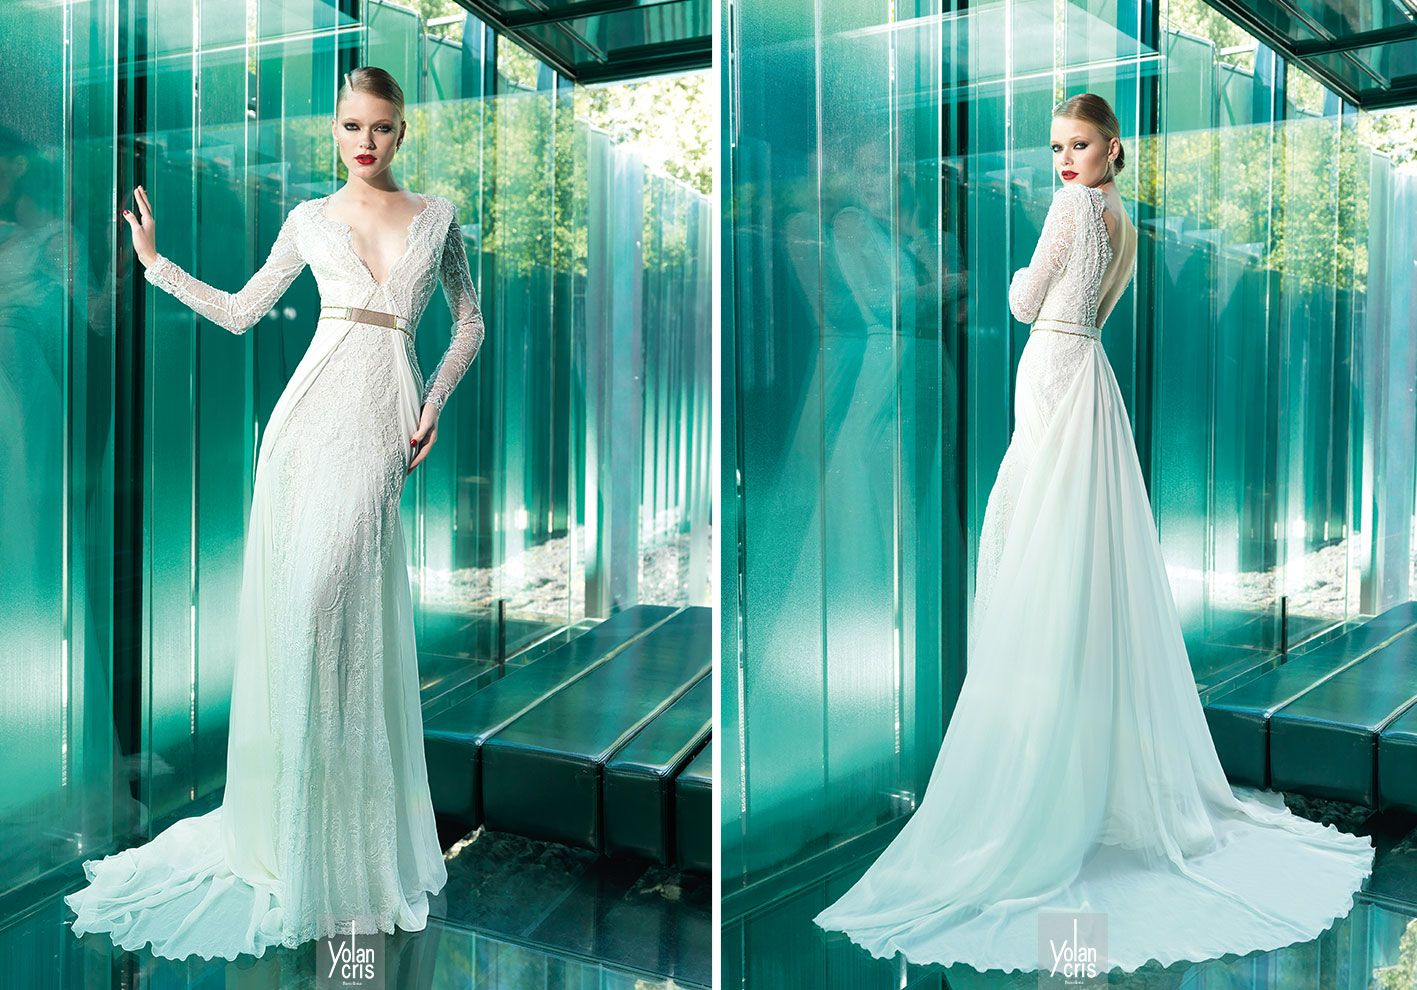 Amazing Vestidos De Novia Yolancris Contemporary - Wedding Ideas ...